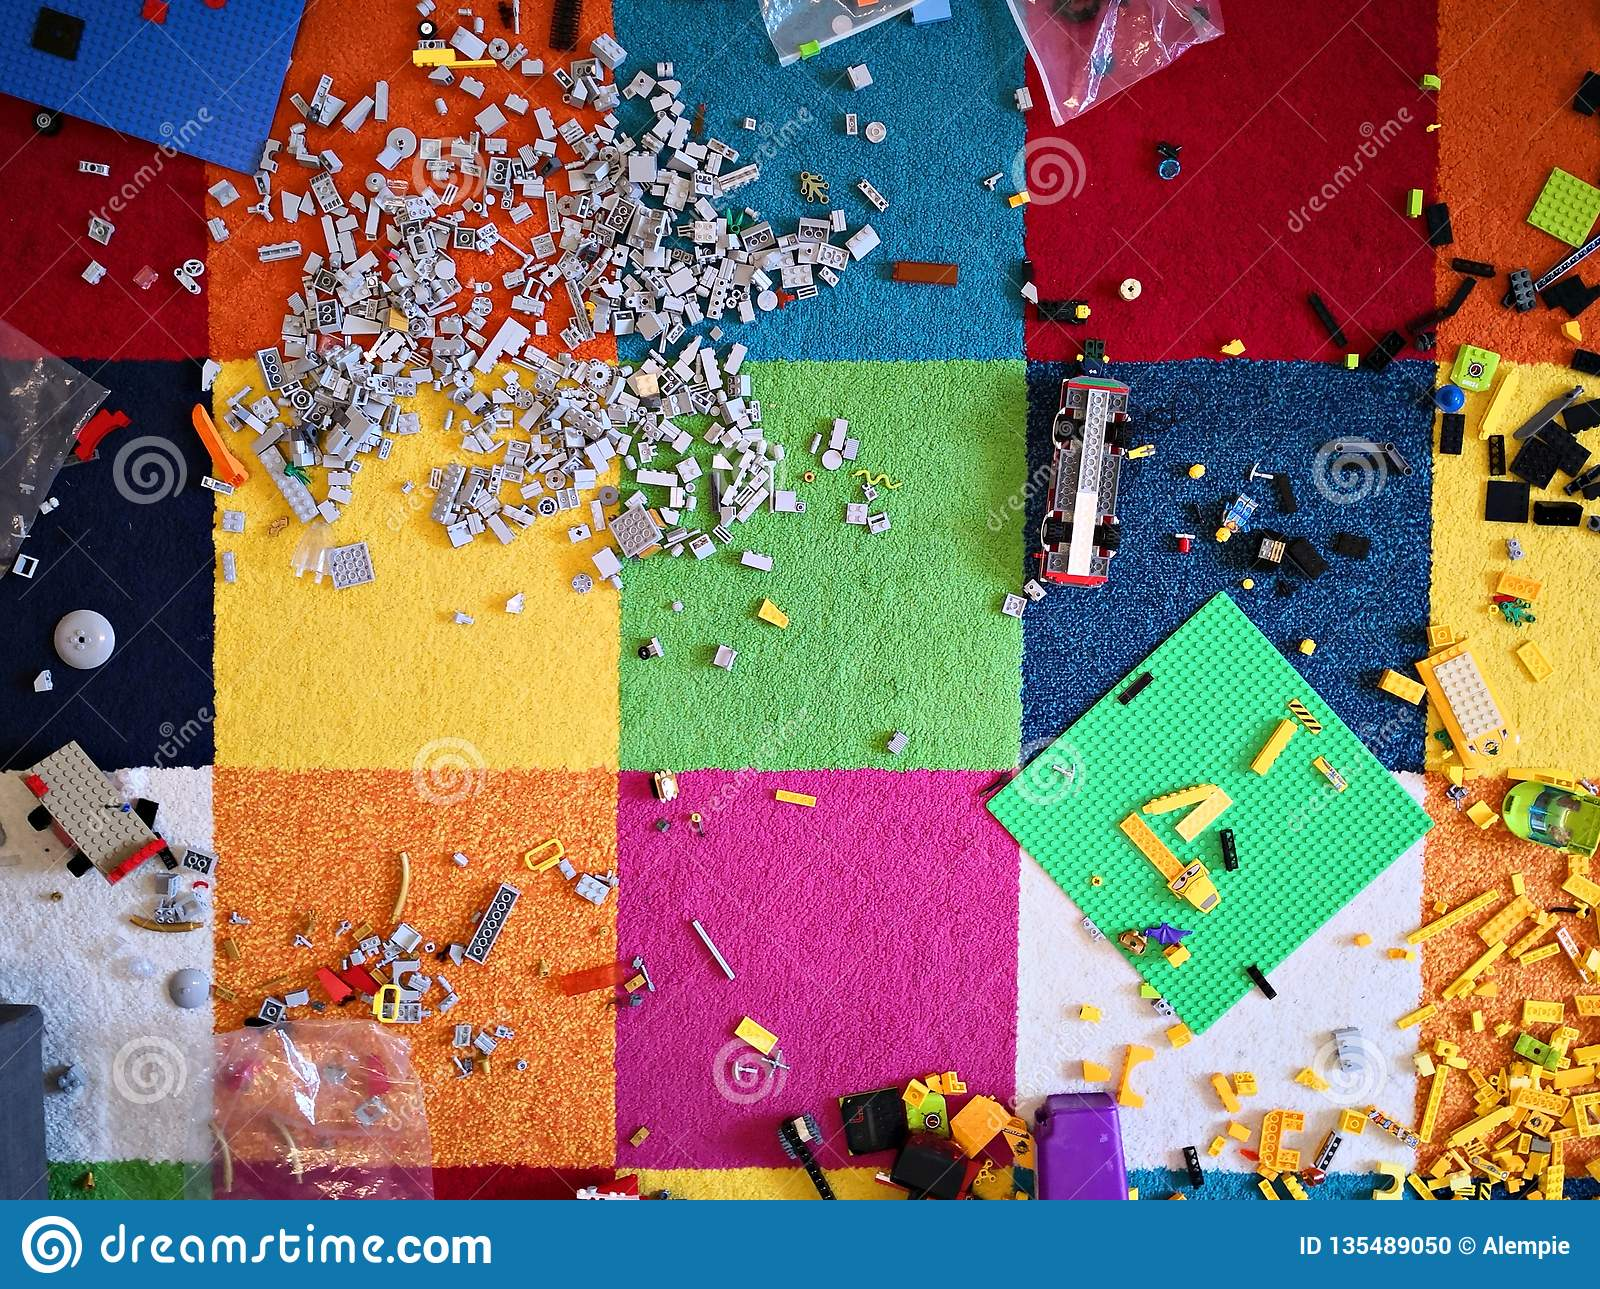 Messy kids room stock photo. Image of toys, child, puddle ...